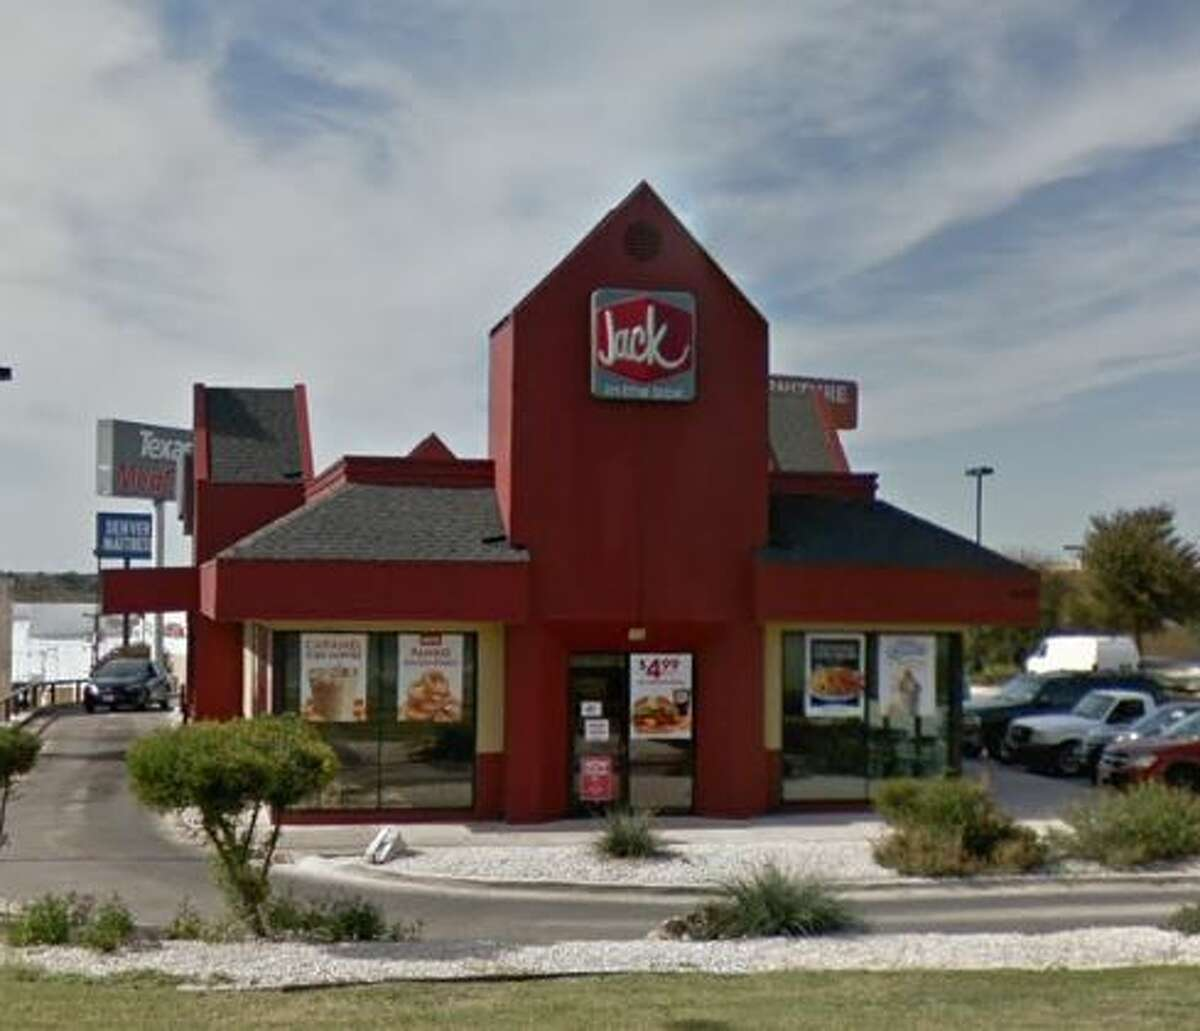 Jack in the Box: 6405 Loop 410 NorthDate: 02/25/2020 Score: 82Highlights: Inspectors observed a used glove in the hand washing sink. The microwave and the drawers under the grill had debris build up. The lid of the exterior waste unit was open with food debris inside.